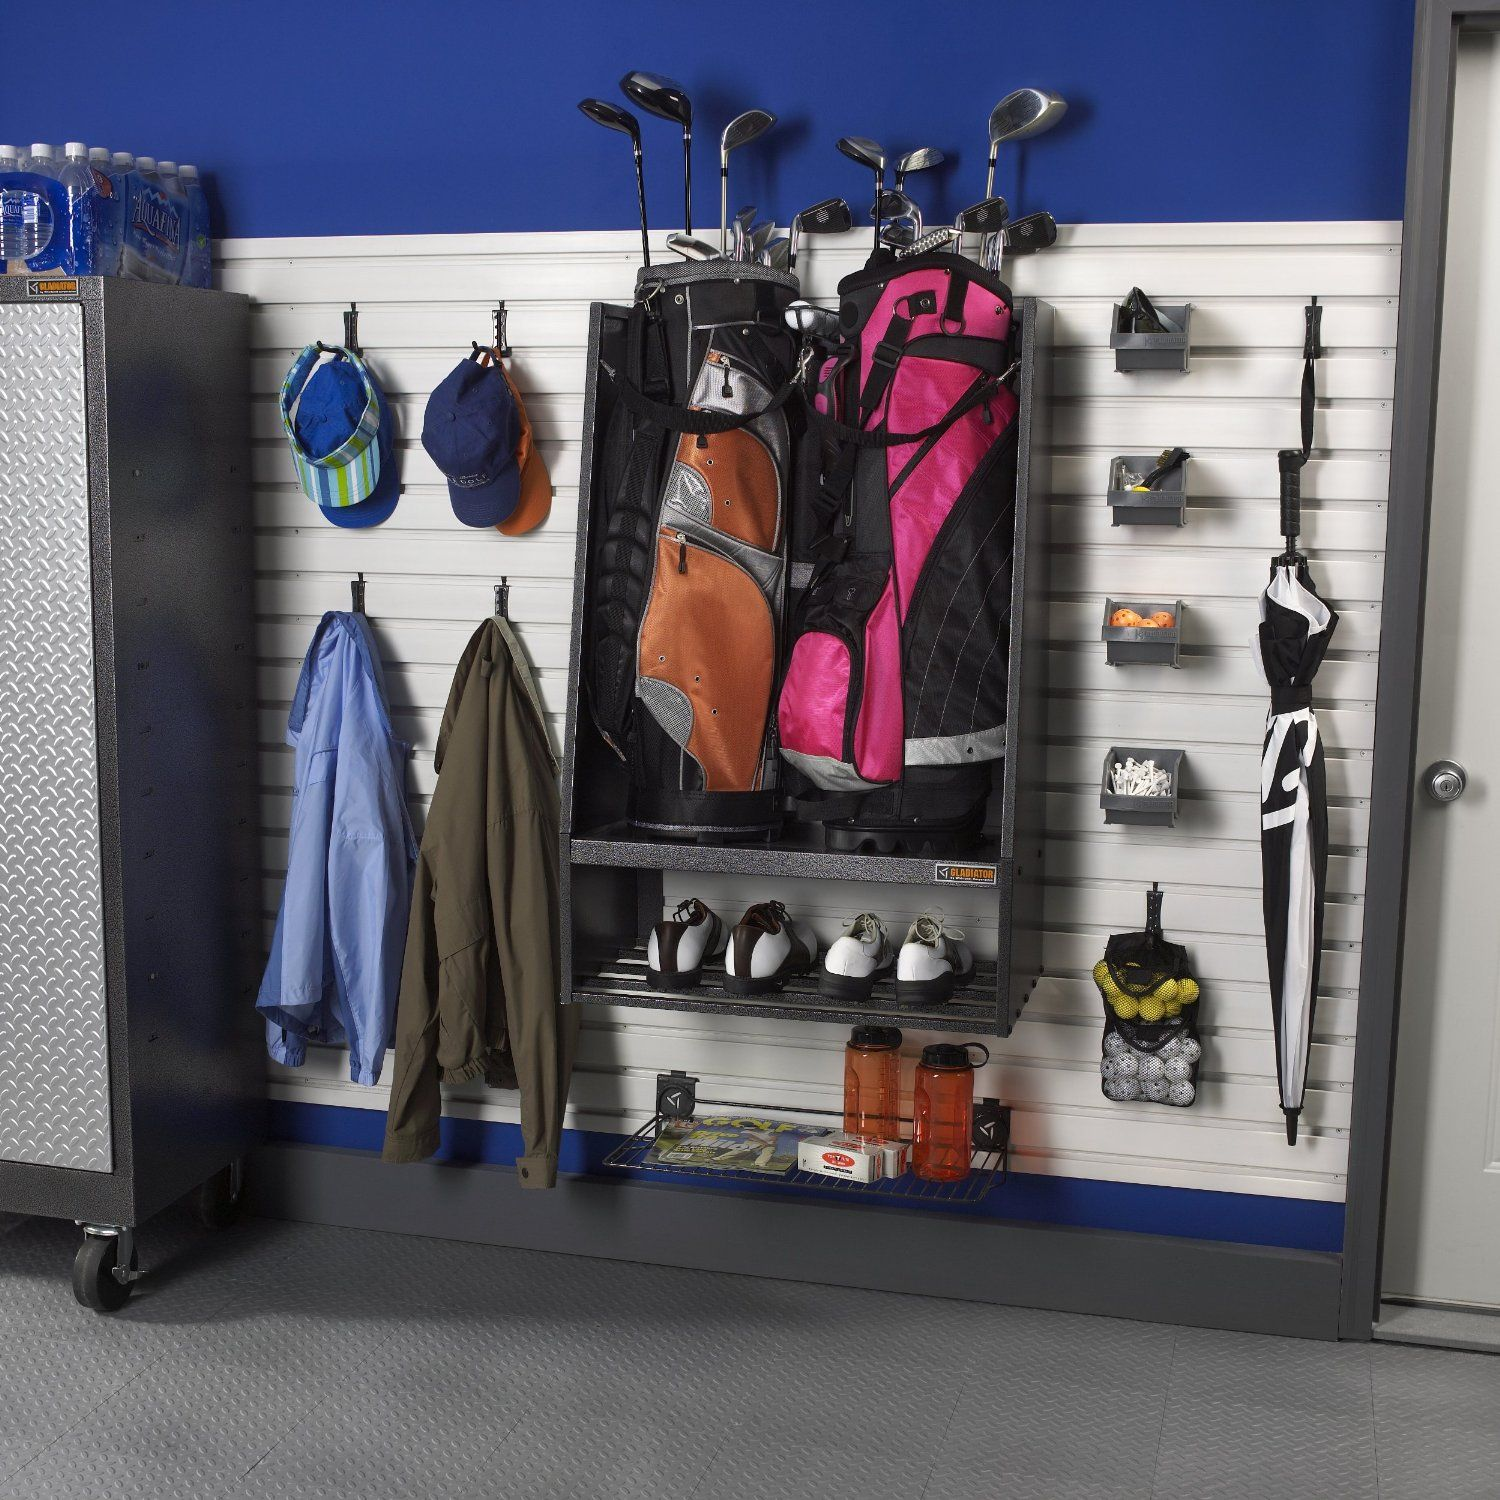 Charming Made From Heavy Duty Steel This Garageworks Golf Caddy By Gladiator Can  Easily Hold Two Oversized